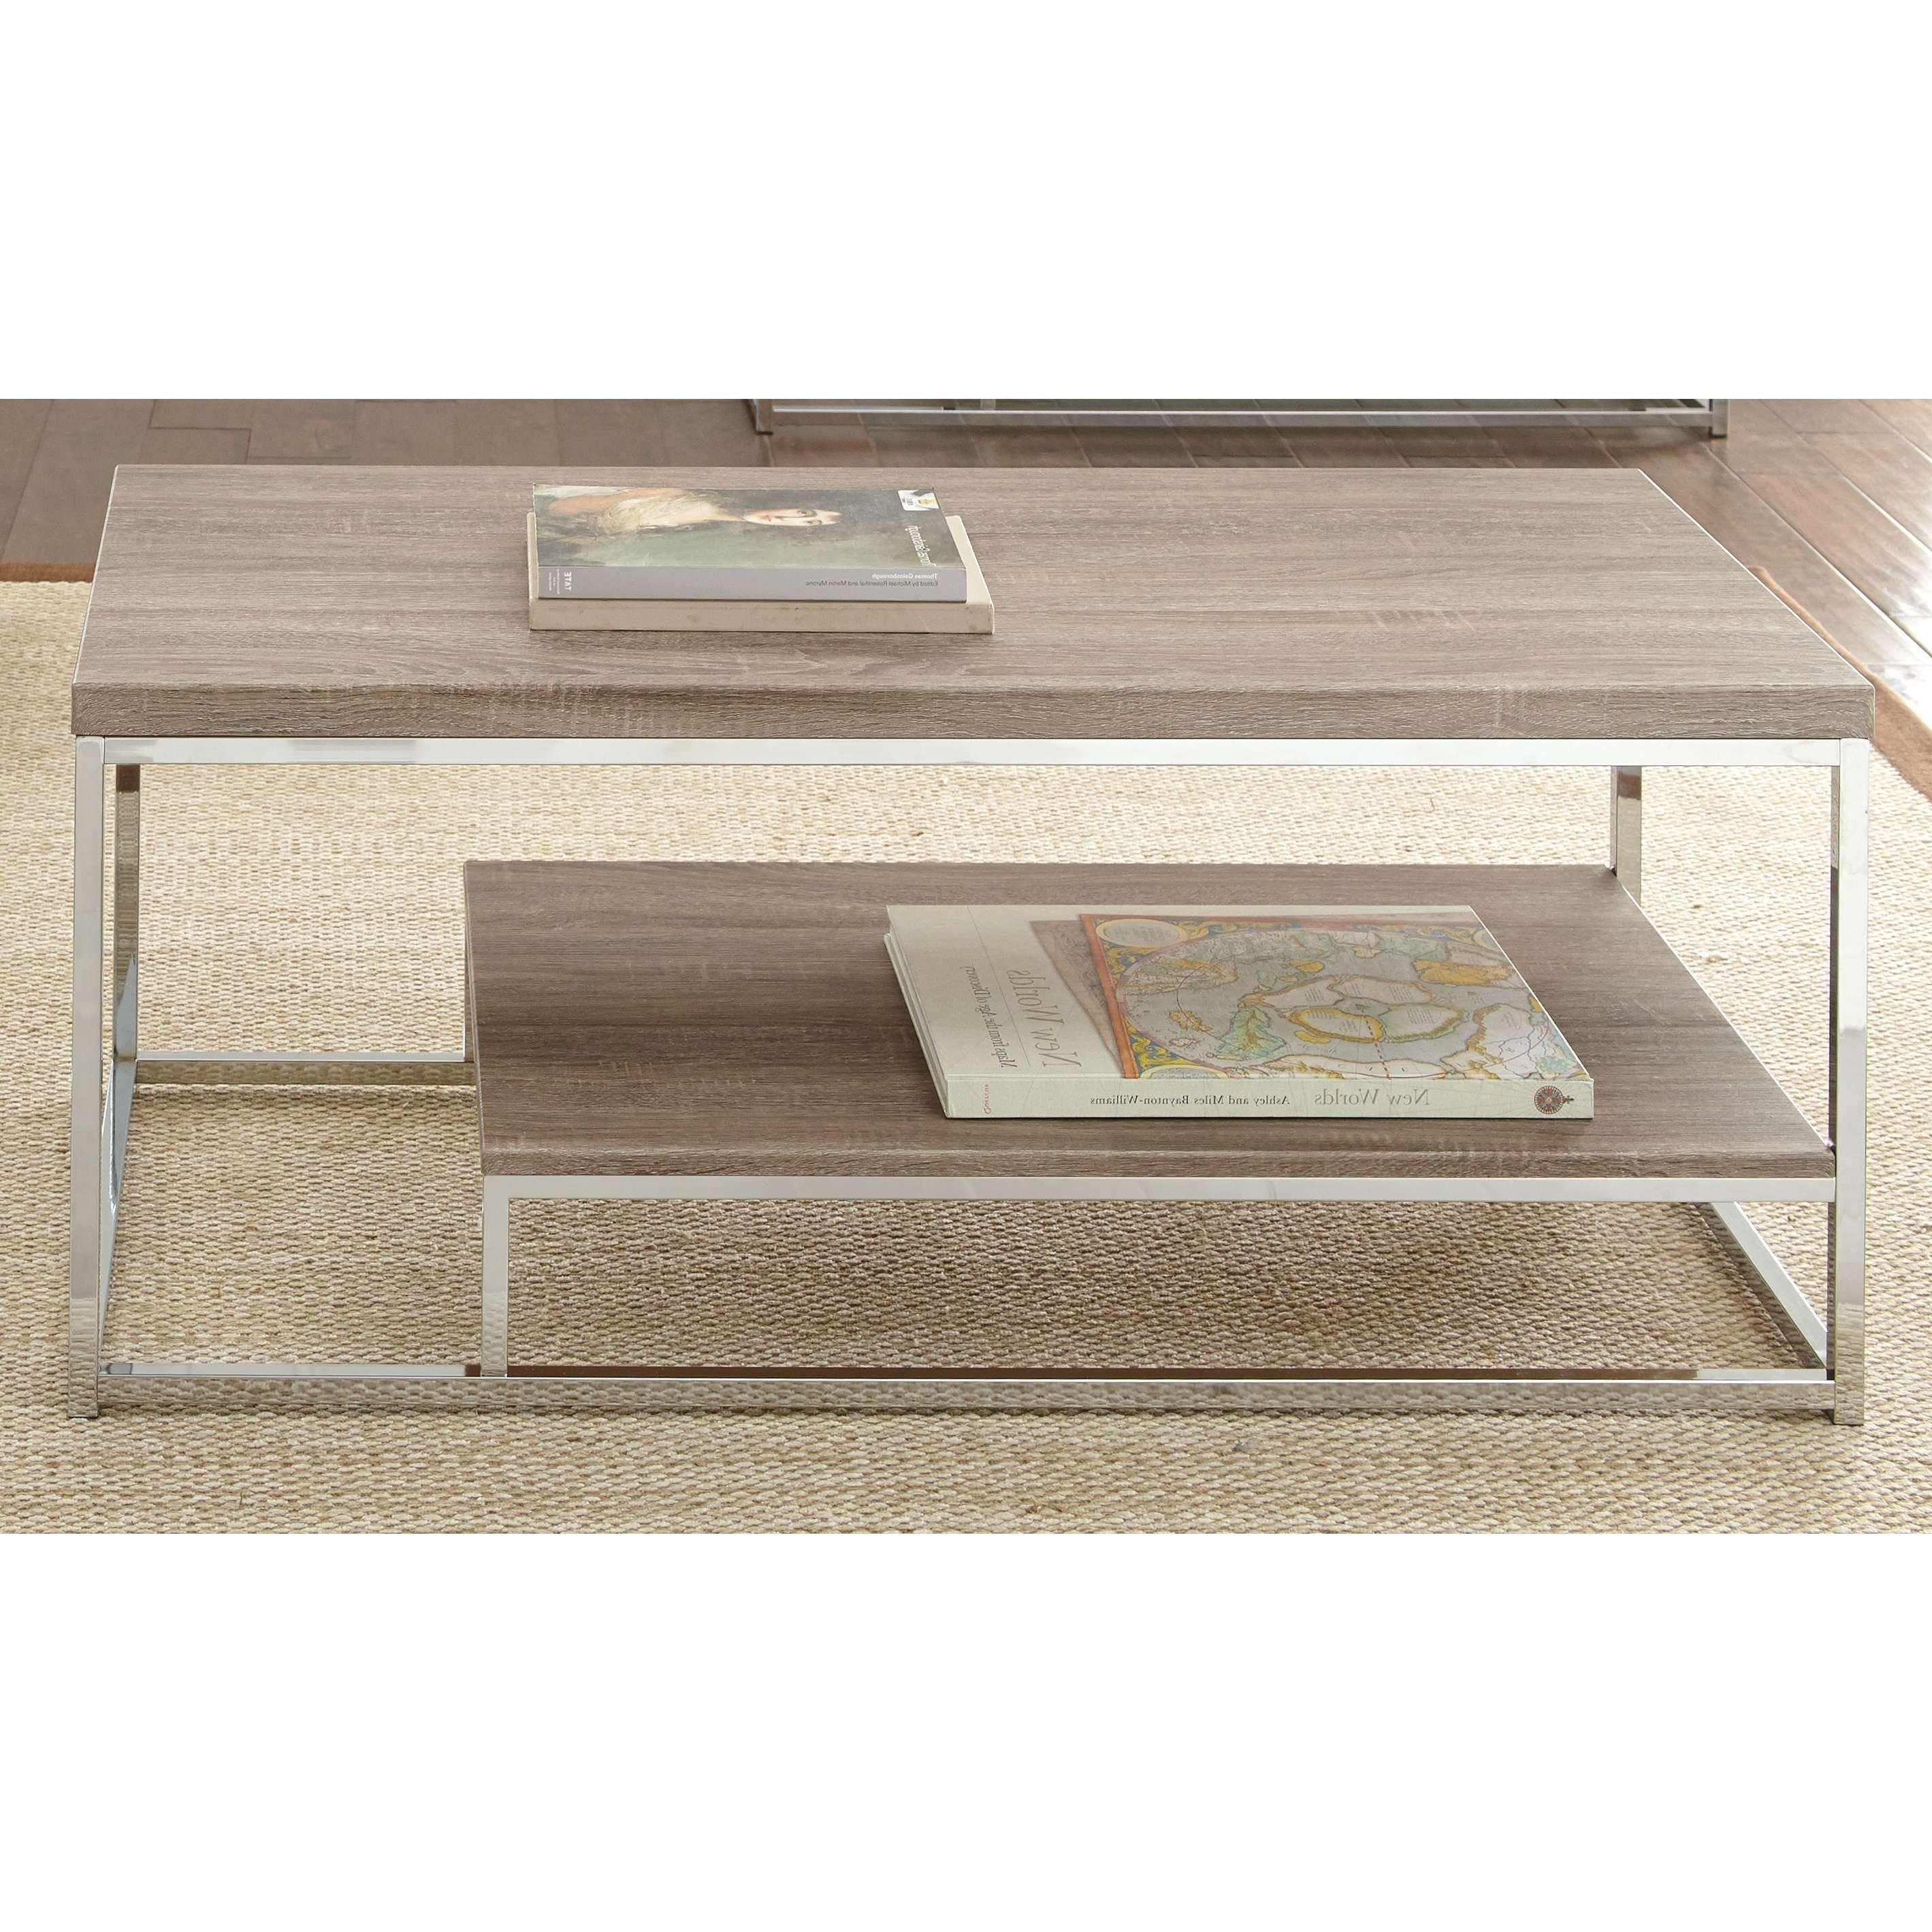 Lennox Chrome And Faux Wood Coffee Tablegreyson Living – Free Throughout Most Popular Chrome And Wood Coffee Tables (View 10 of 20)